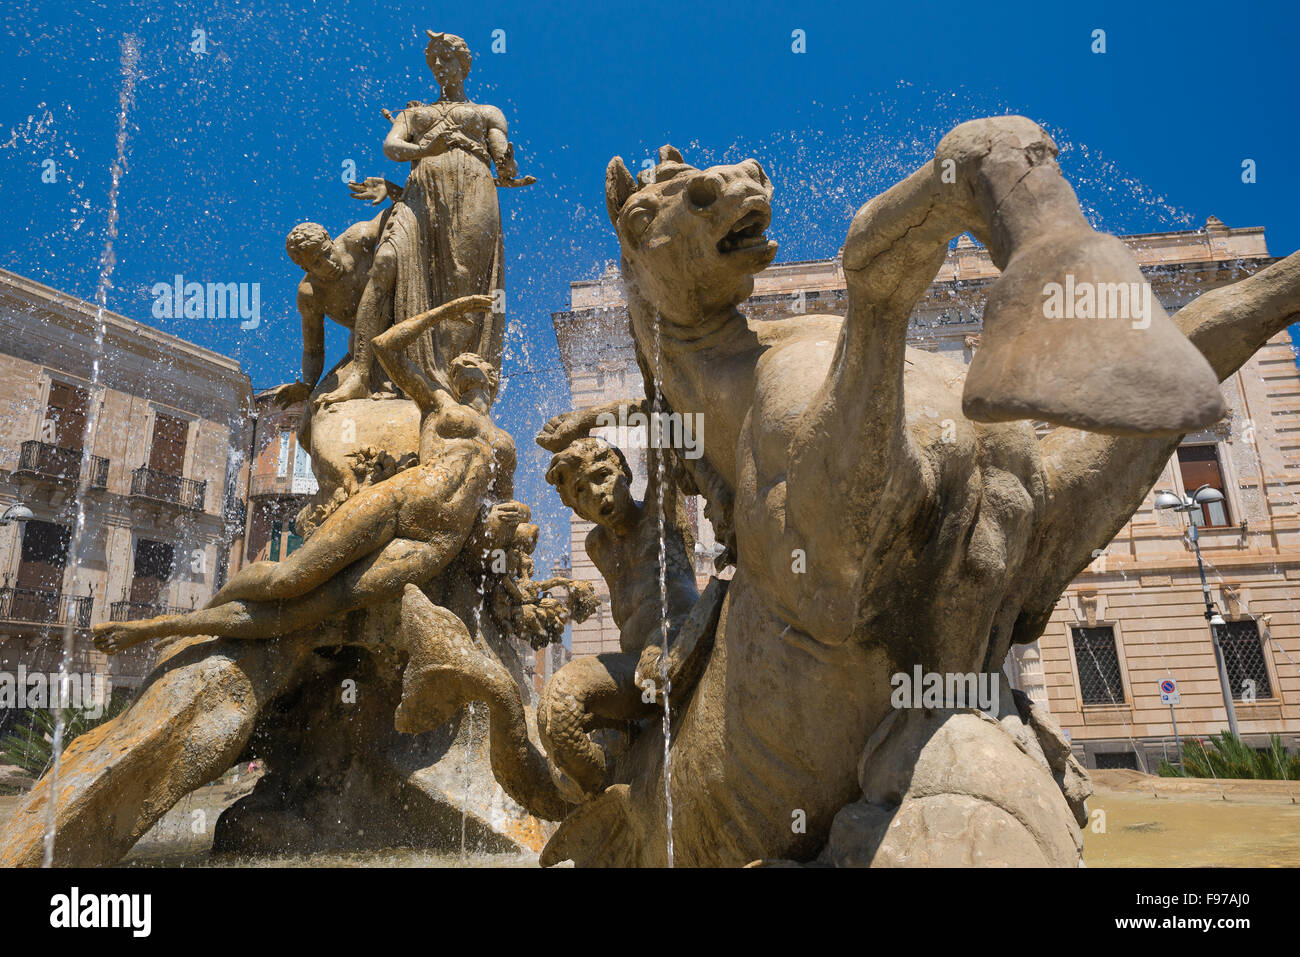 Ortigia Sicily, view of the Fountain of Artemis in the Piazza Archimede in Ortigia (Ortygia), Syracuse (Siracusa), - Stock Image